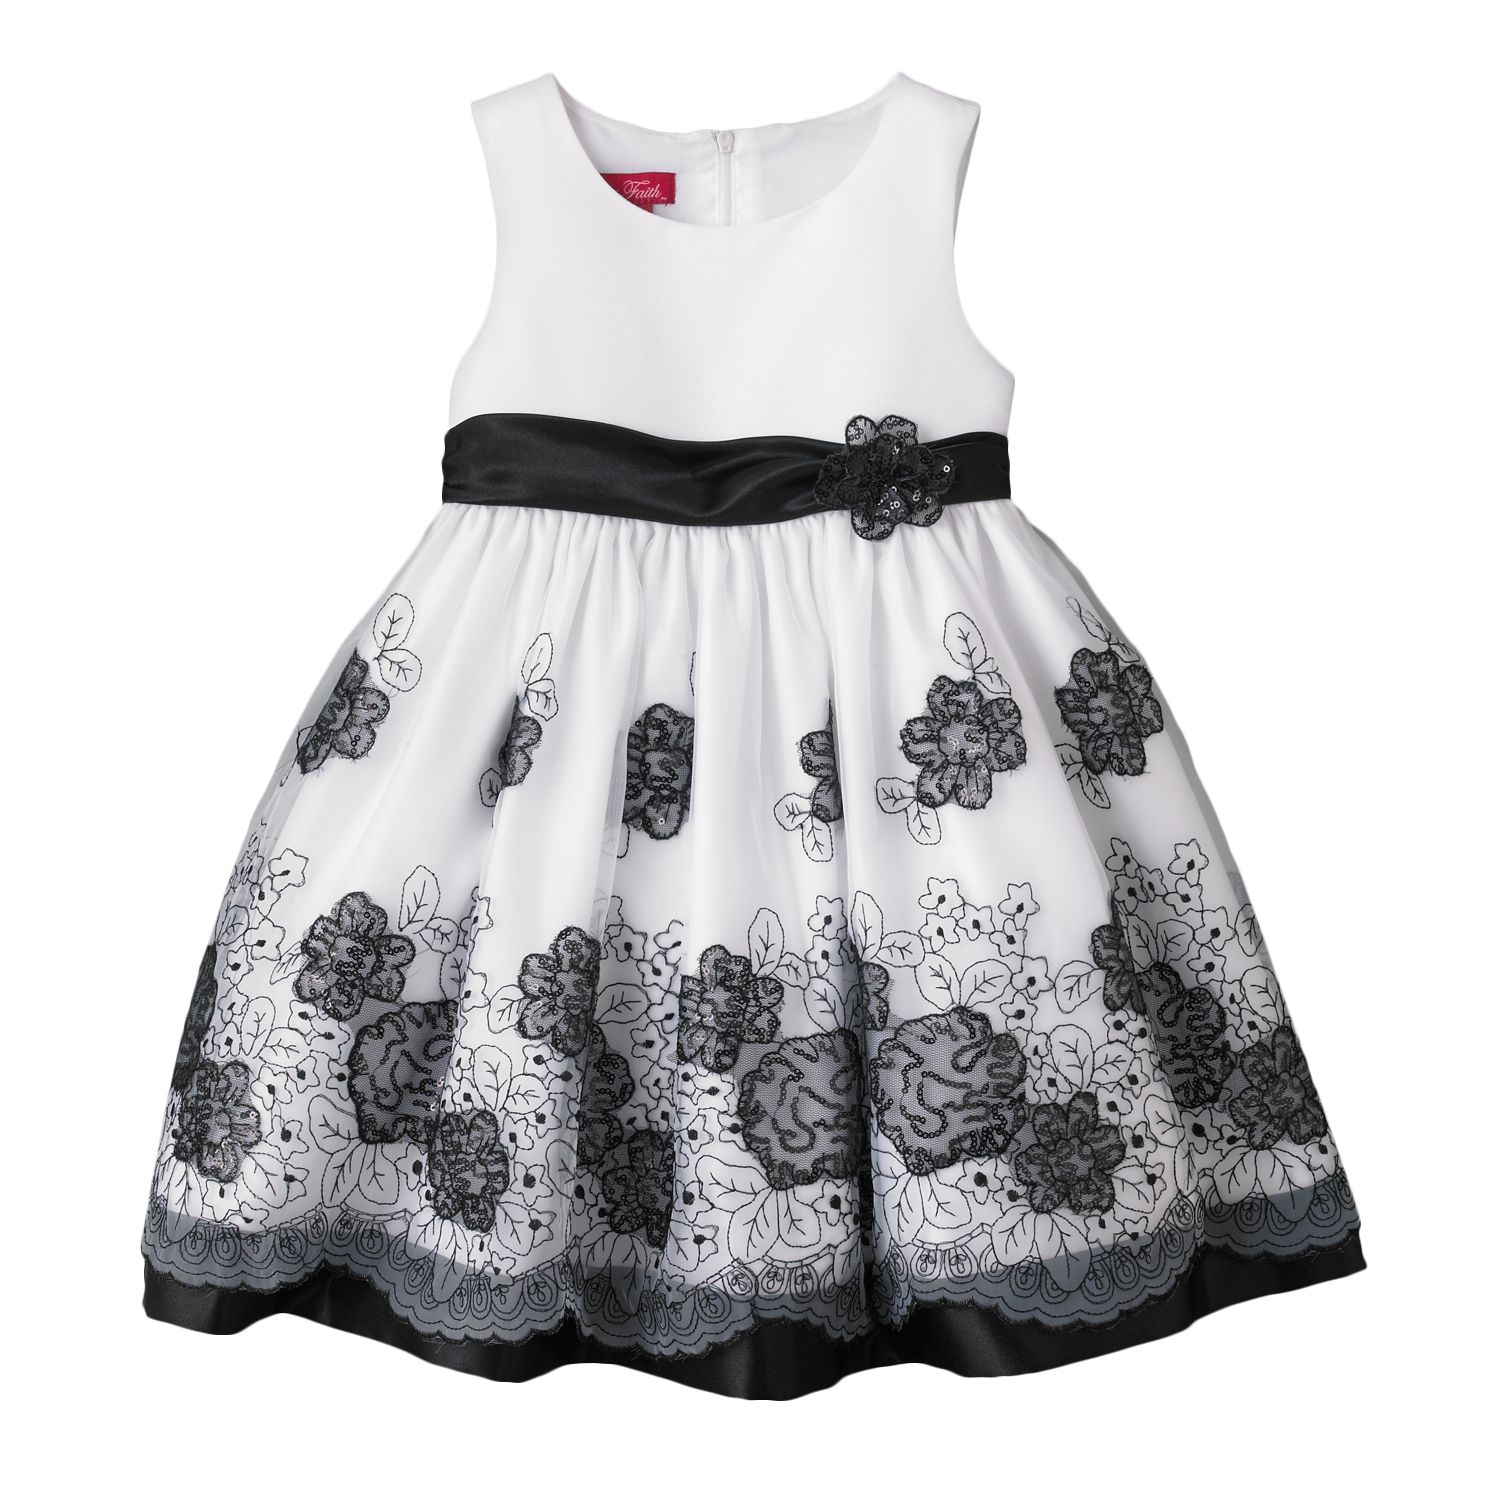 Black And White Toddler Dresses g5b6rOYp